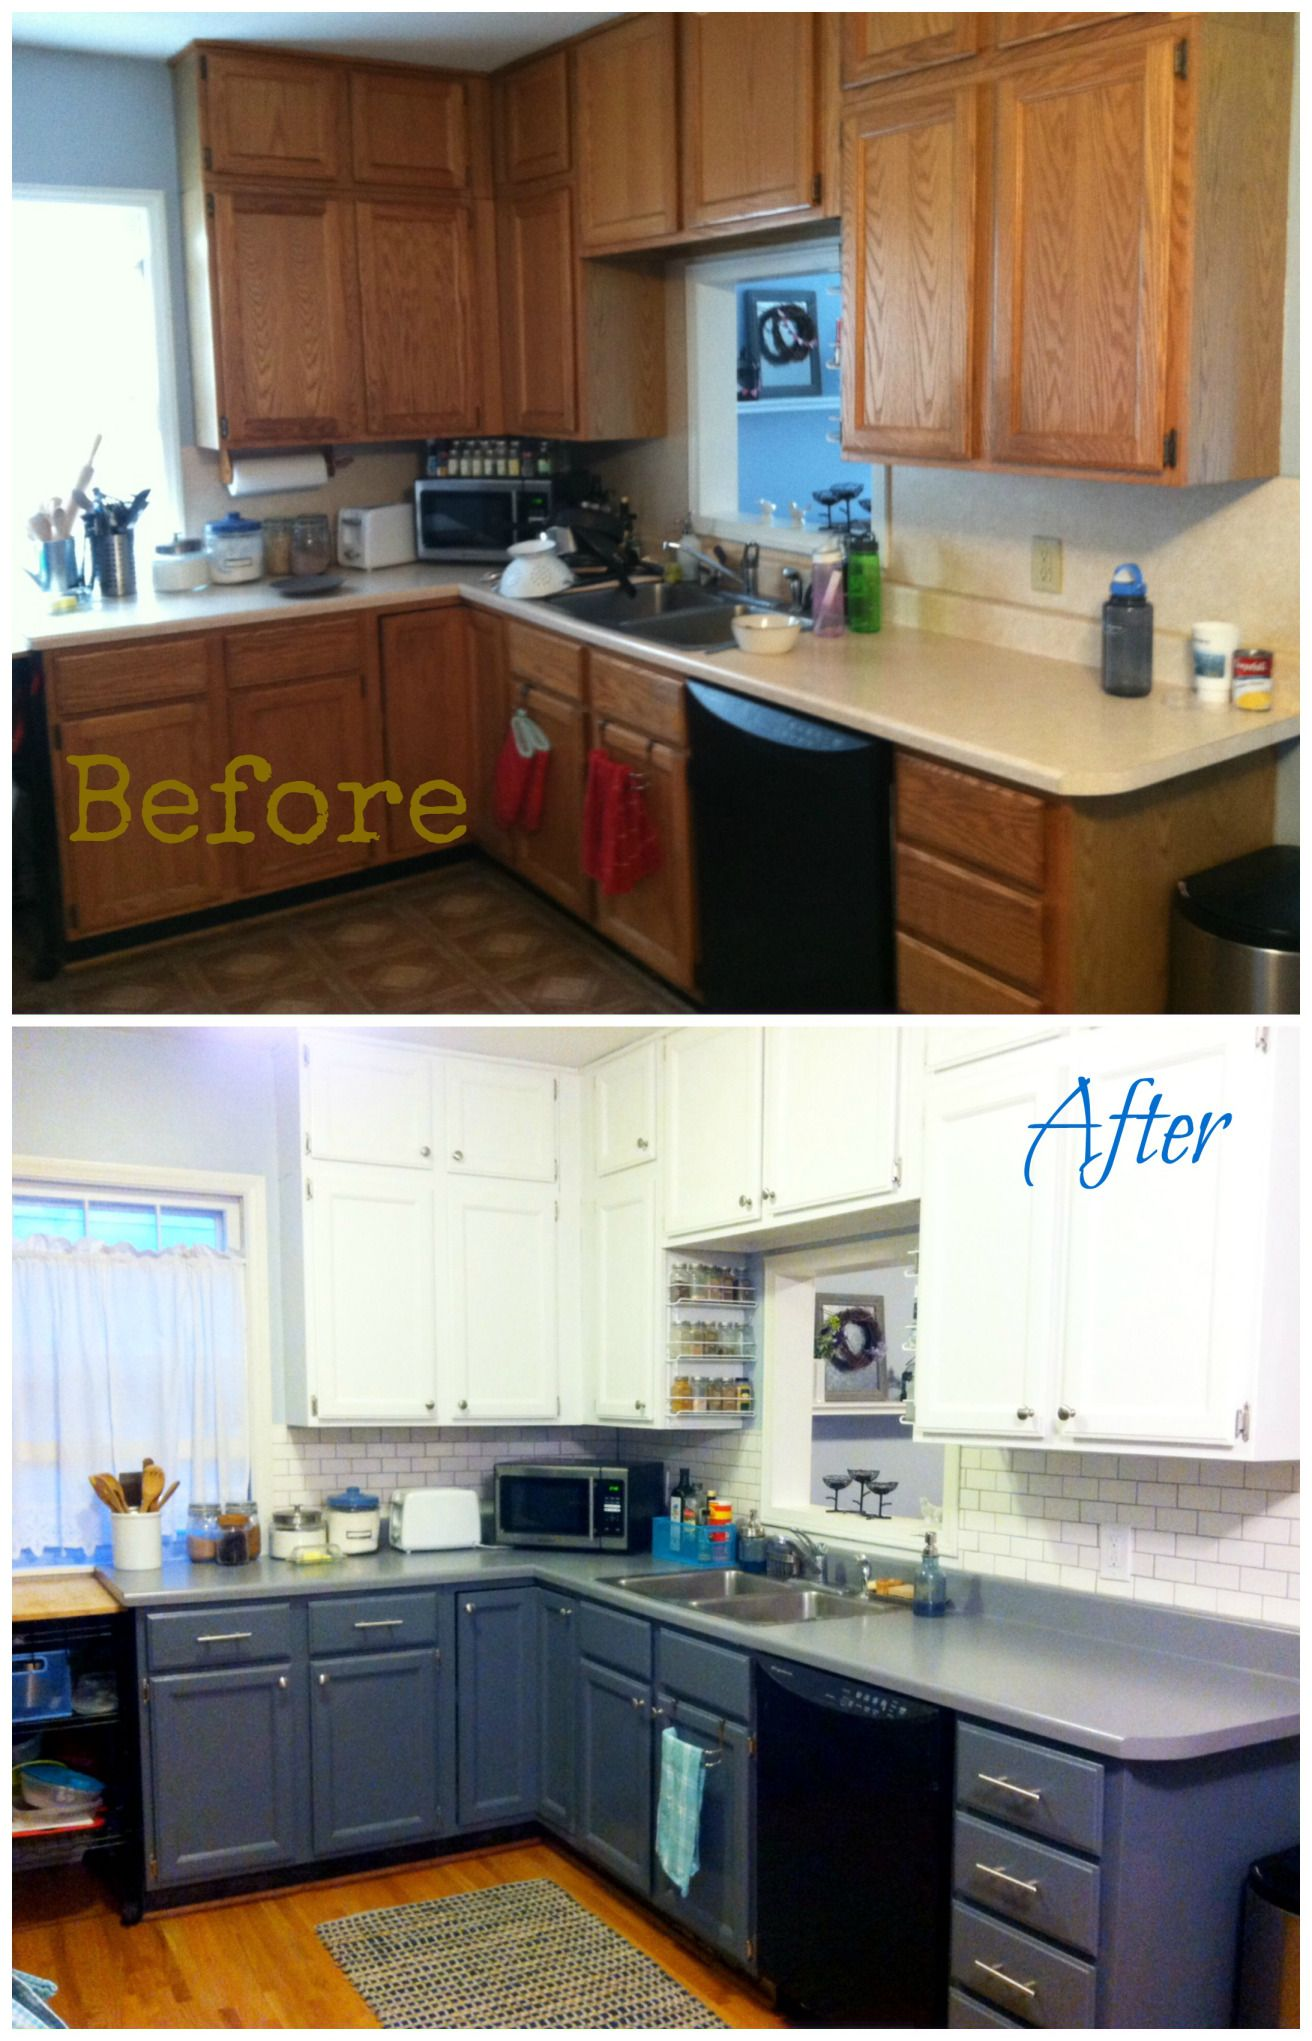 Kitchen Before And After With Very Good Advice Re Rustoleum Countertop Cover